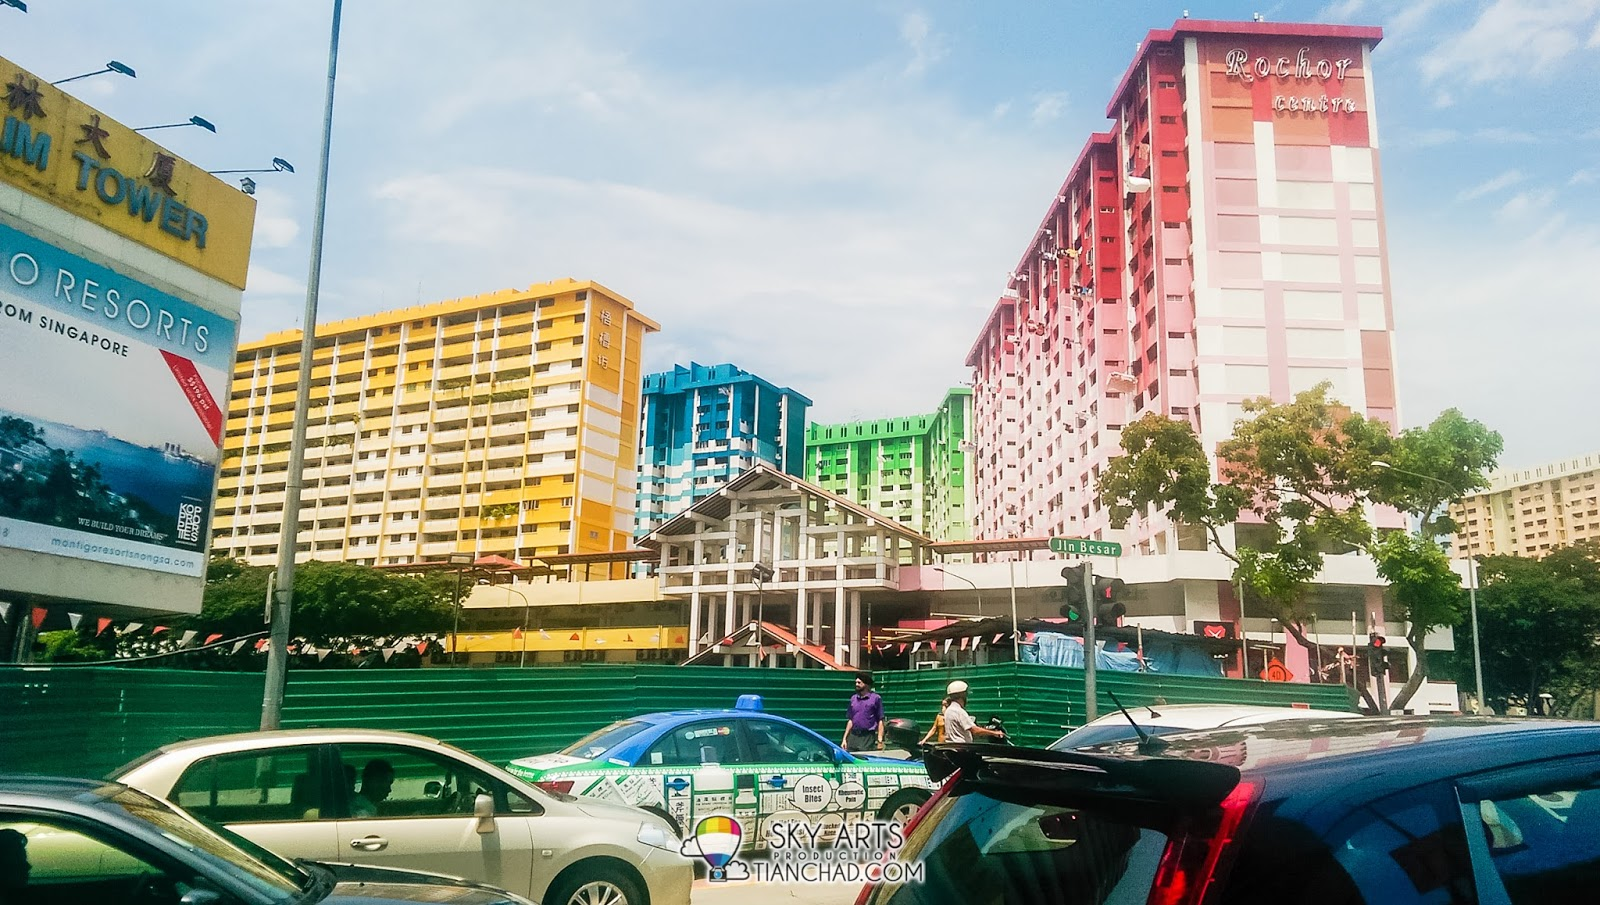 Rainbow color building near Bugis Street spotted